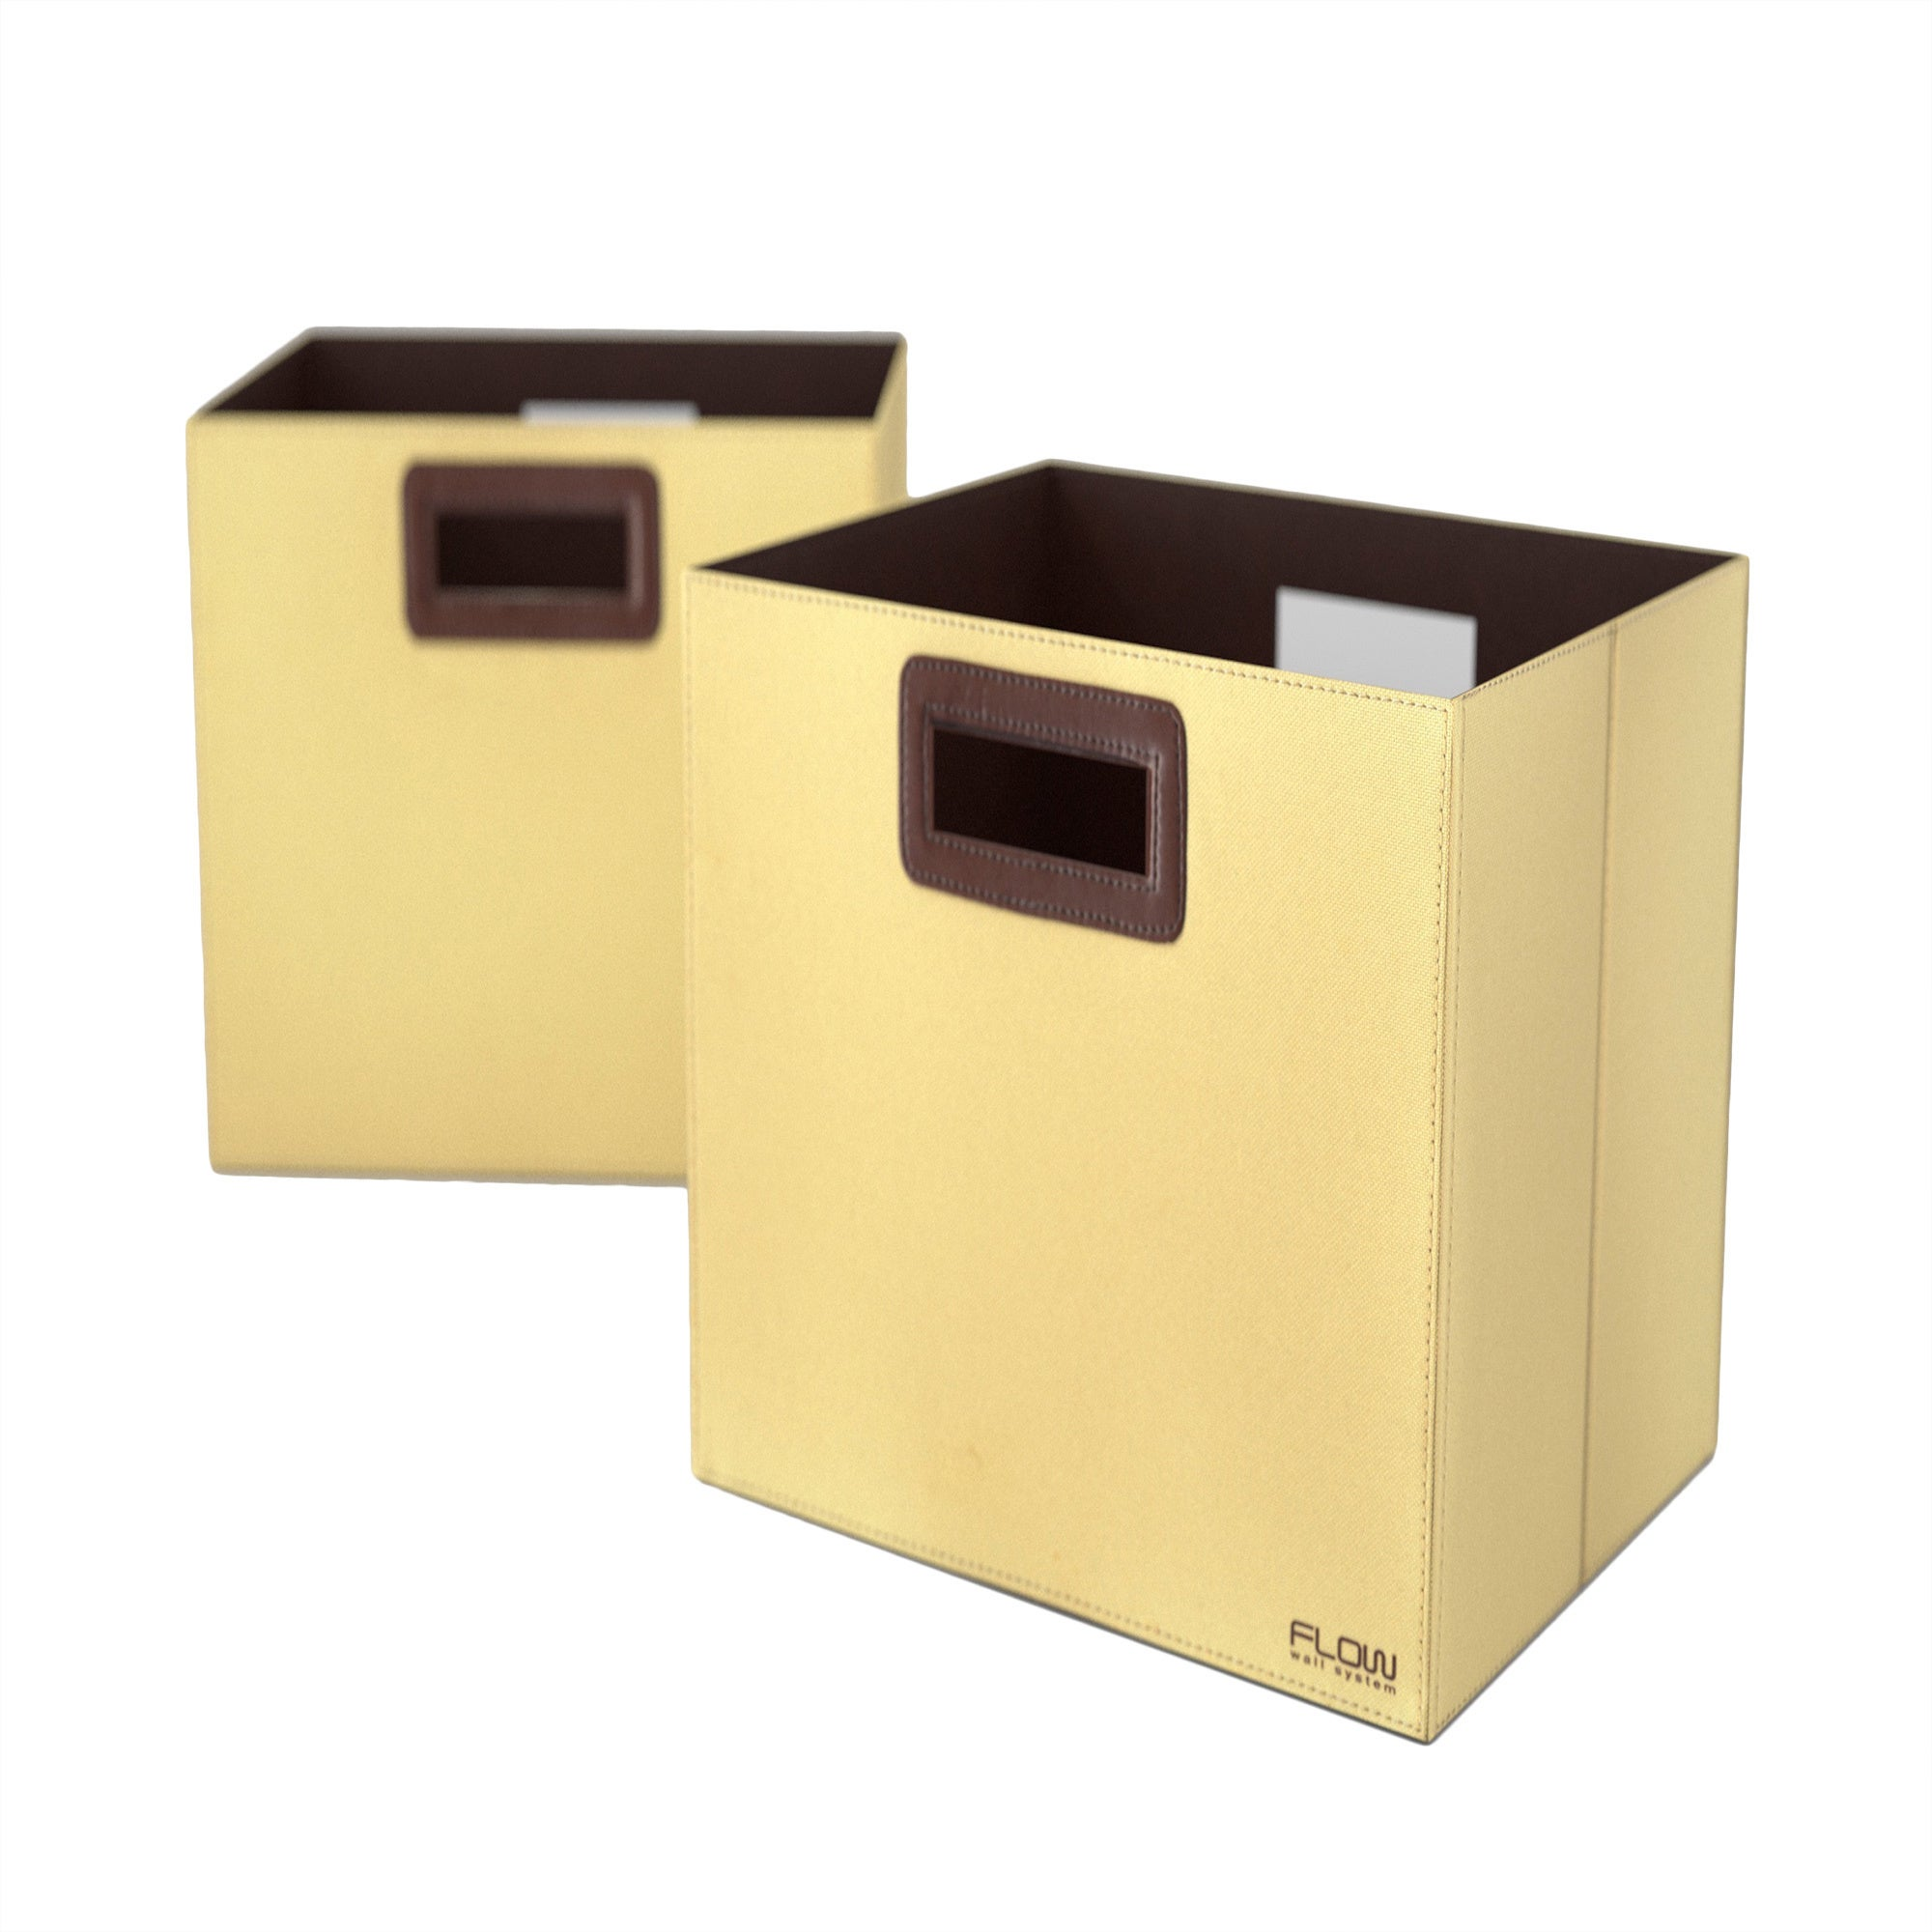 Shop Flow Wall Decor Jumbo Collapsible Beige Storage Bins (Set of 2 ...